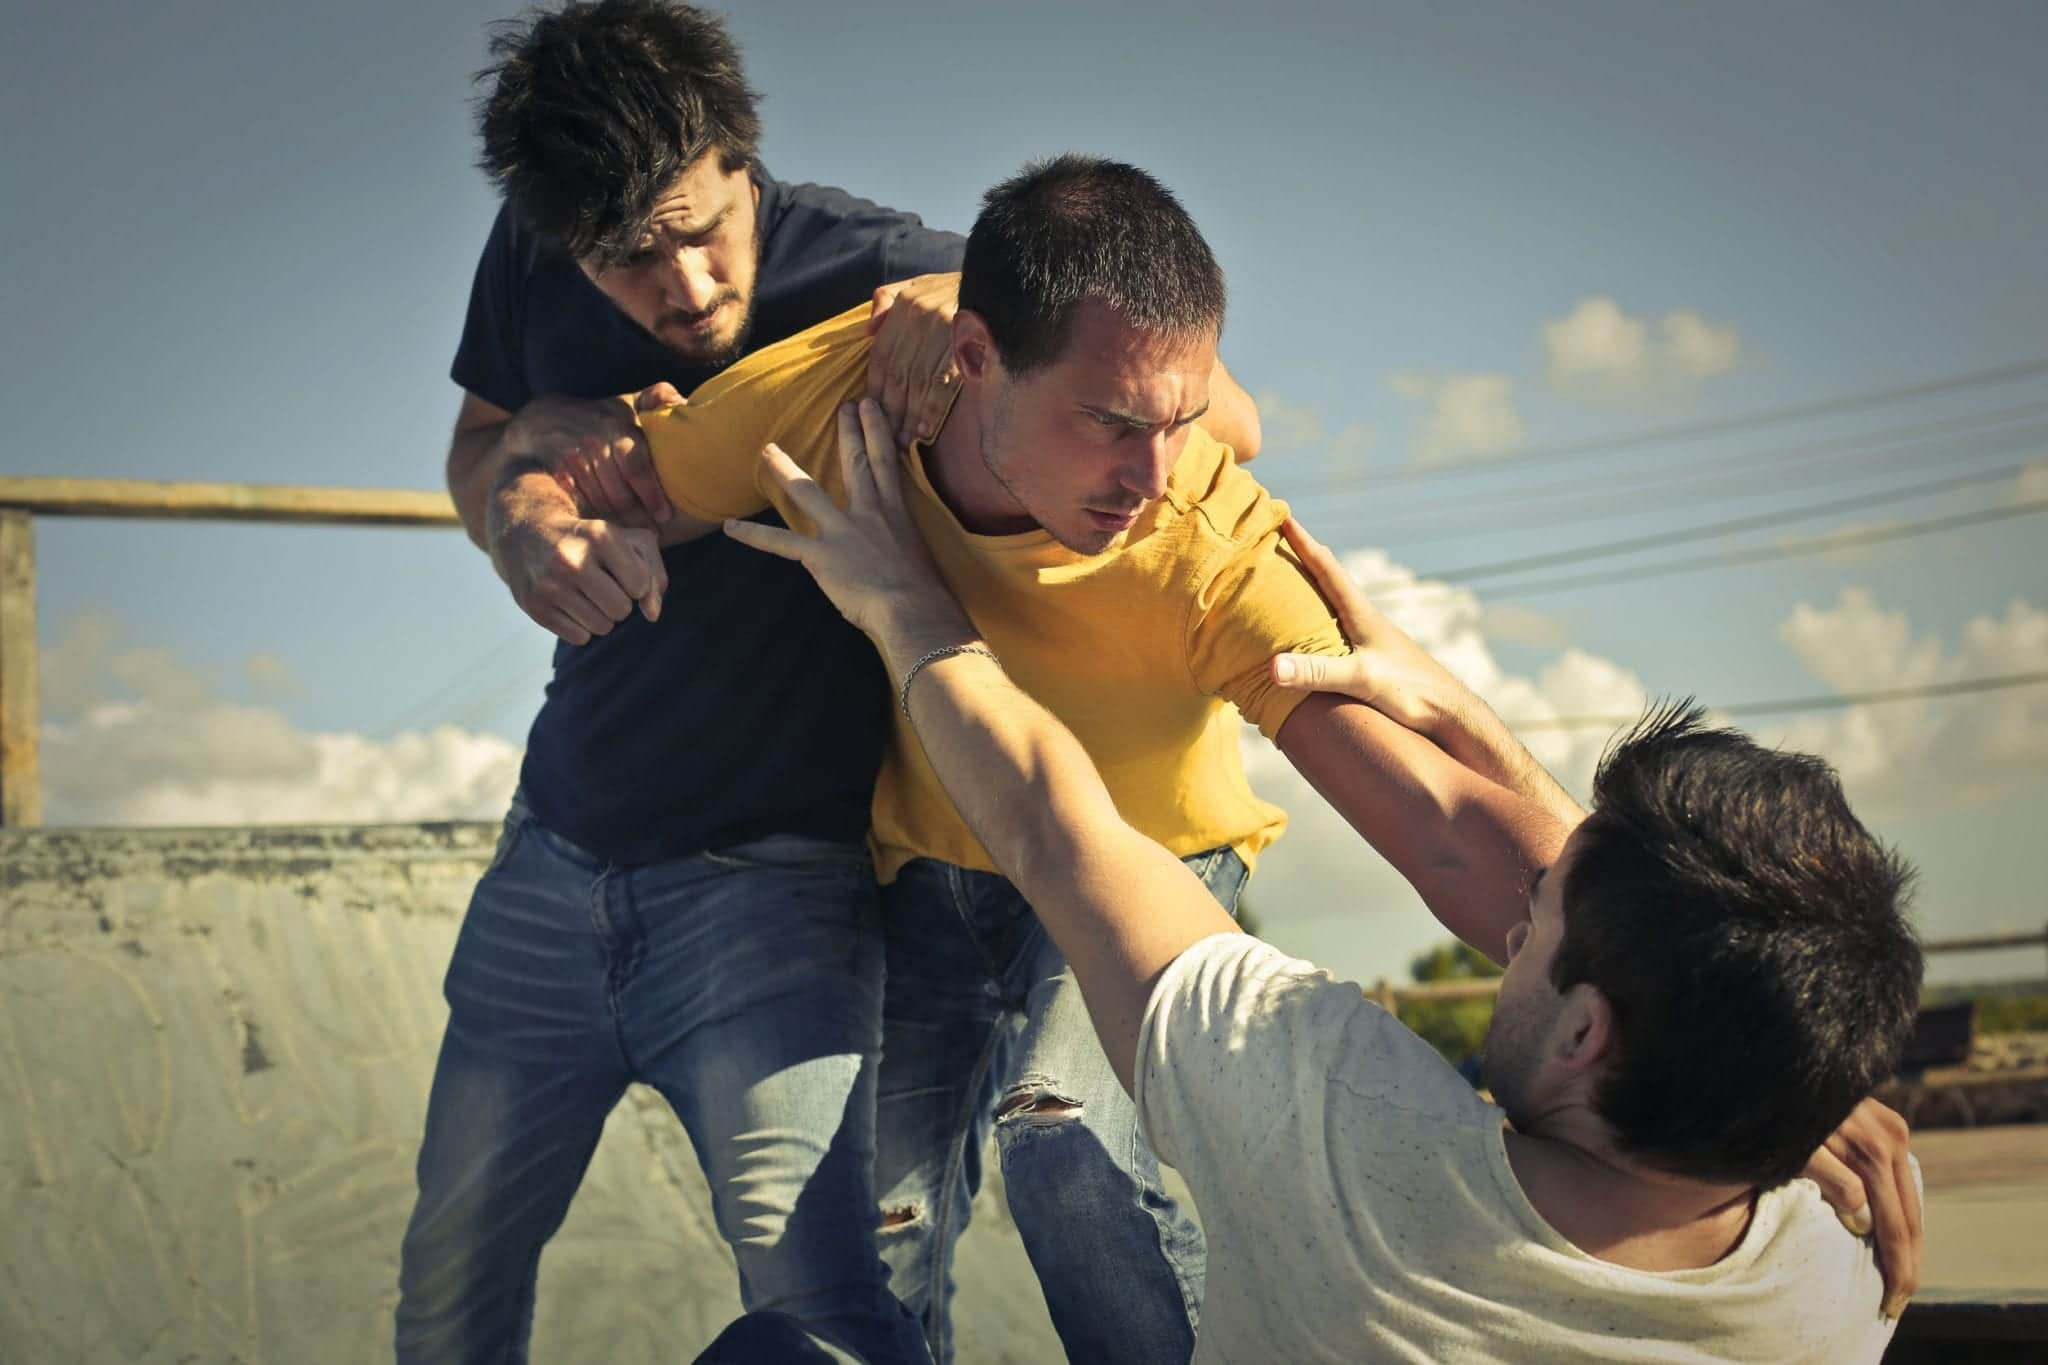 Simple Assault vs. Aggravated Assault in Texas